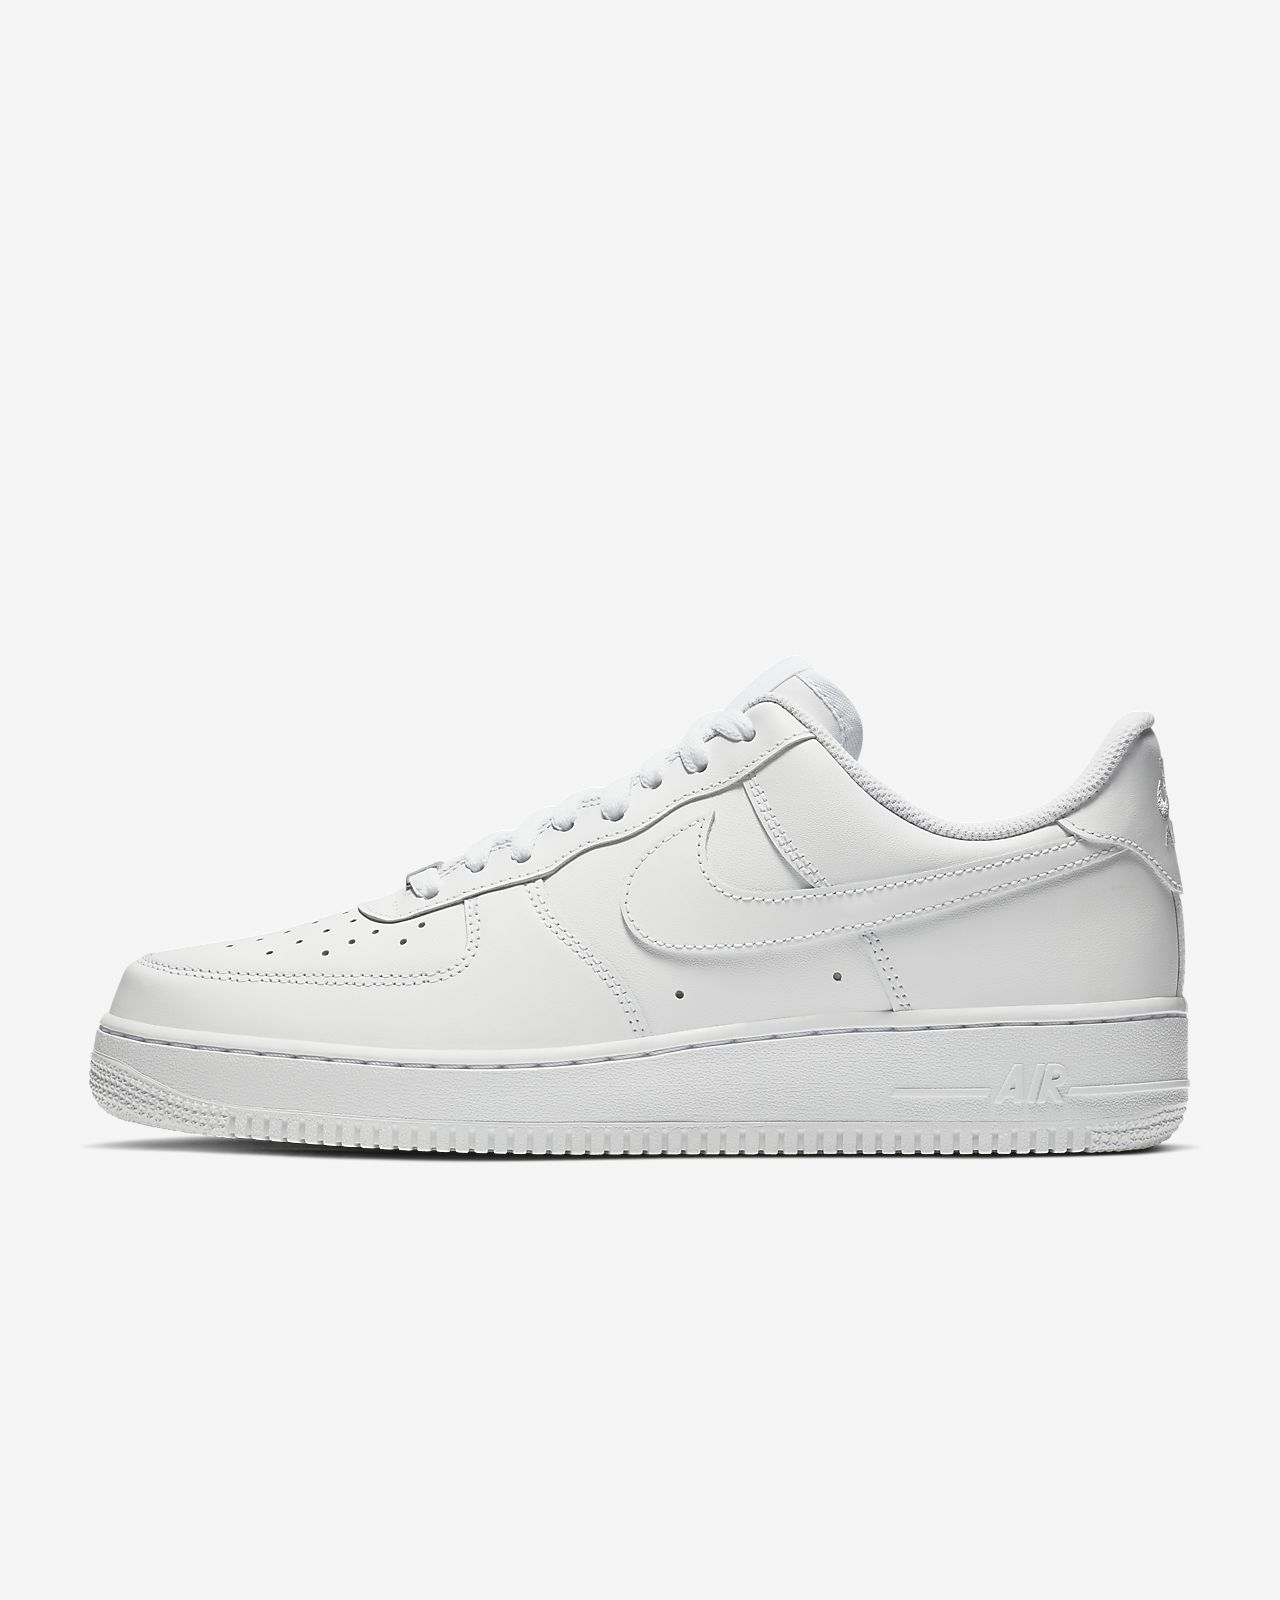 ad6a83054d Nike Air Force 1 '07 Shoe. Nike.com